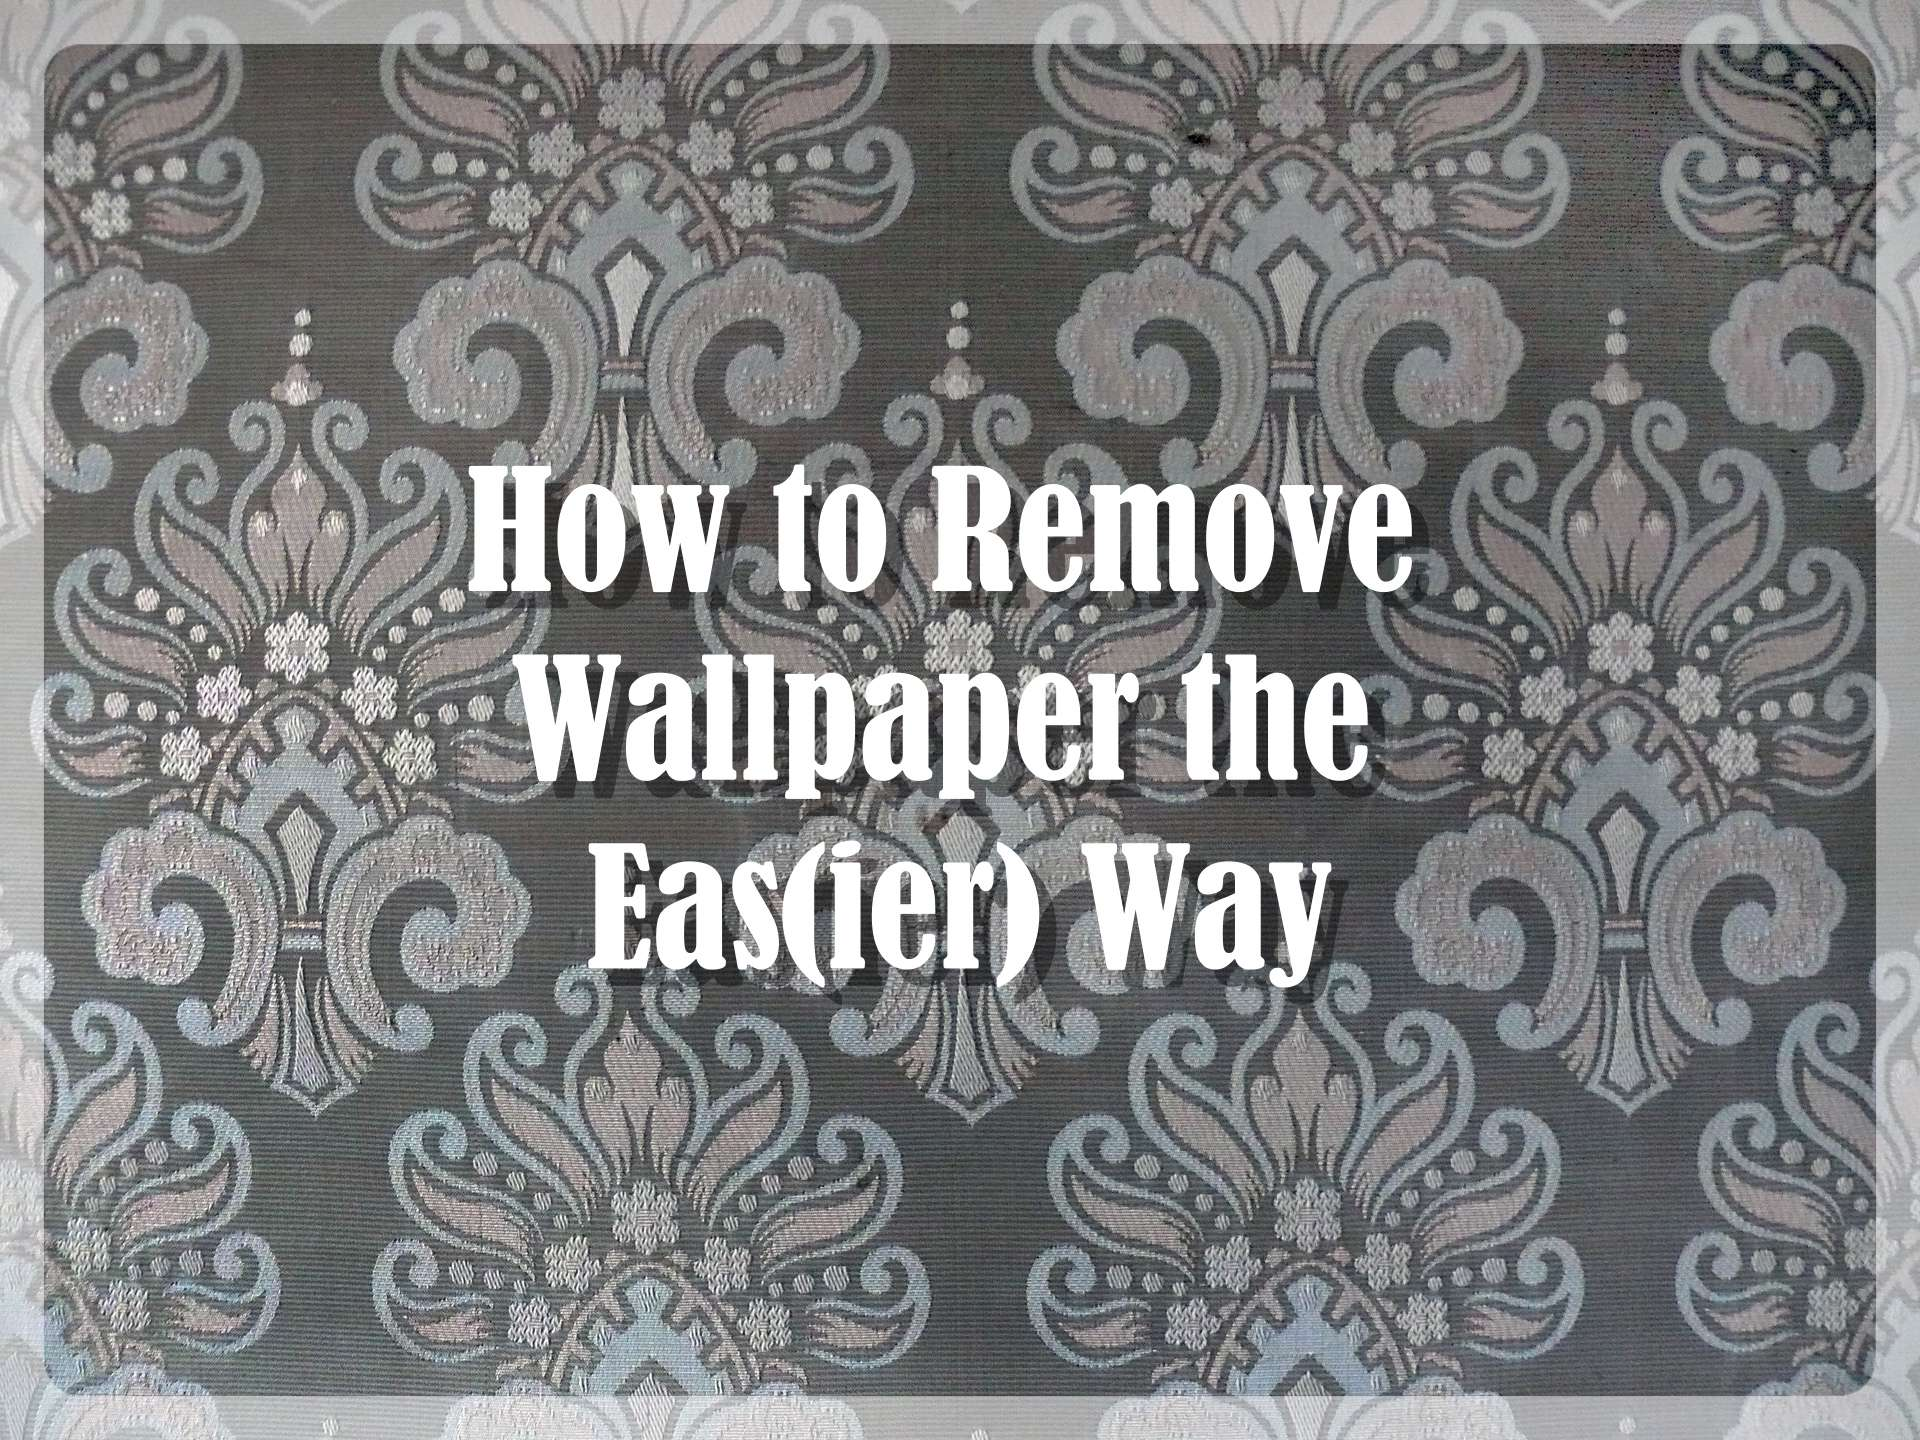 Removing Wallpaper the Eas(ier) Way